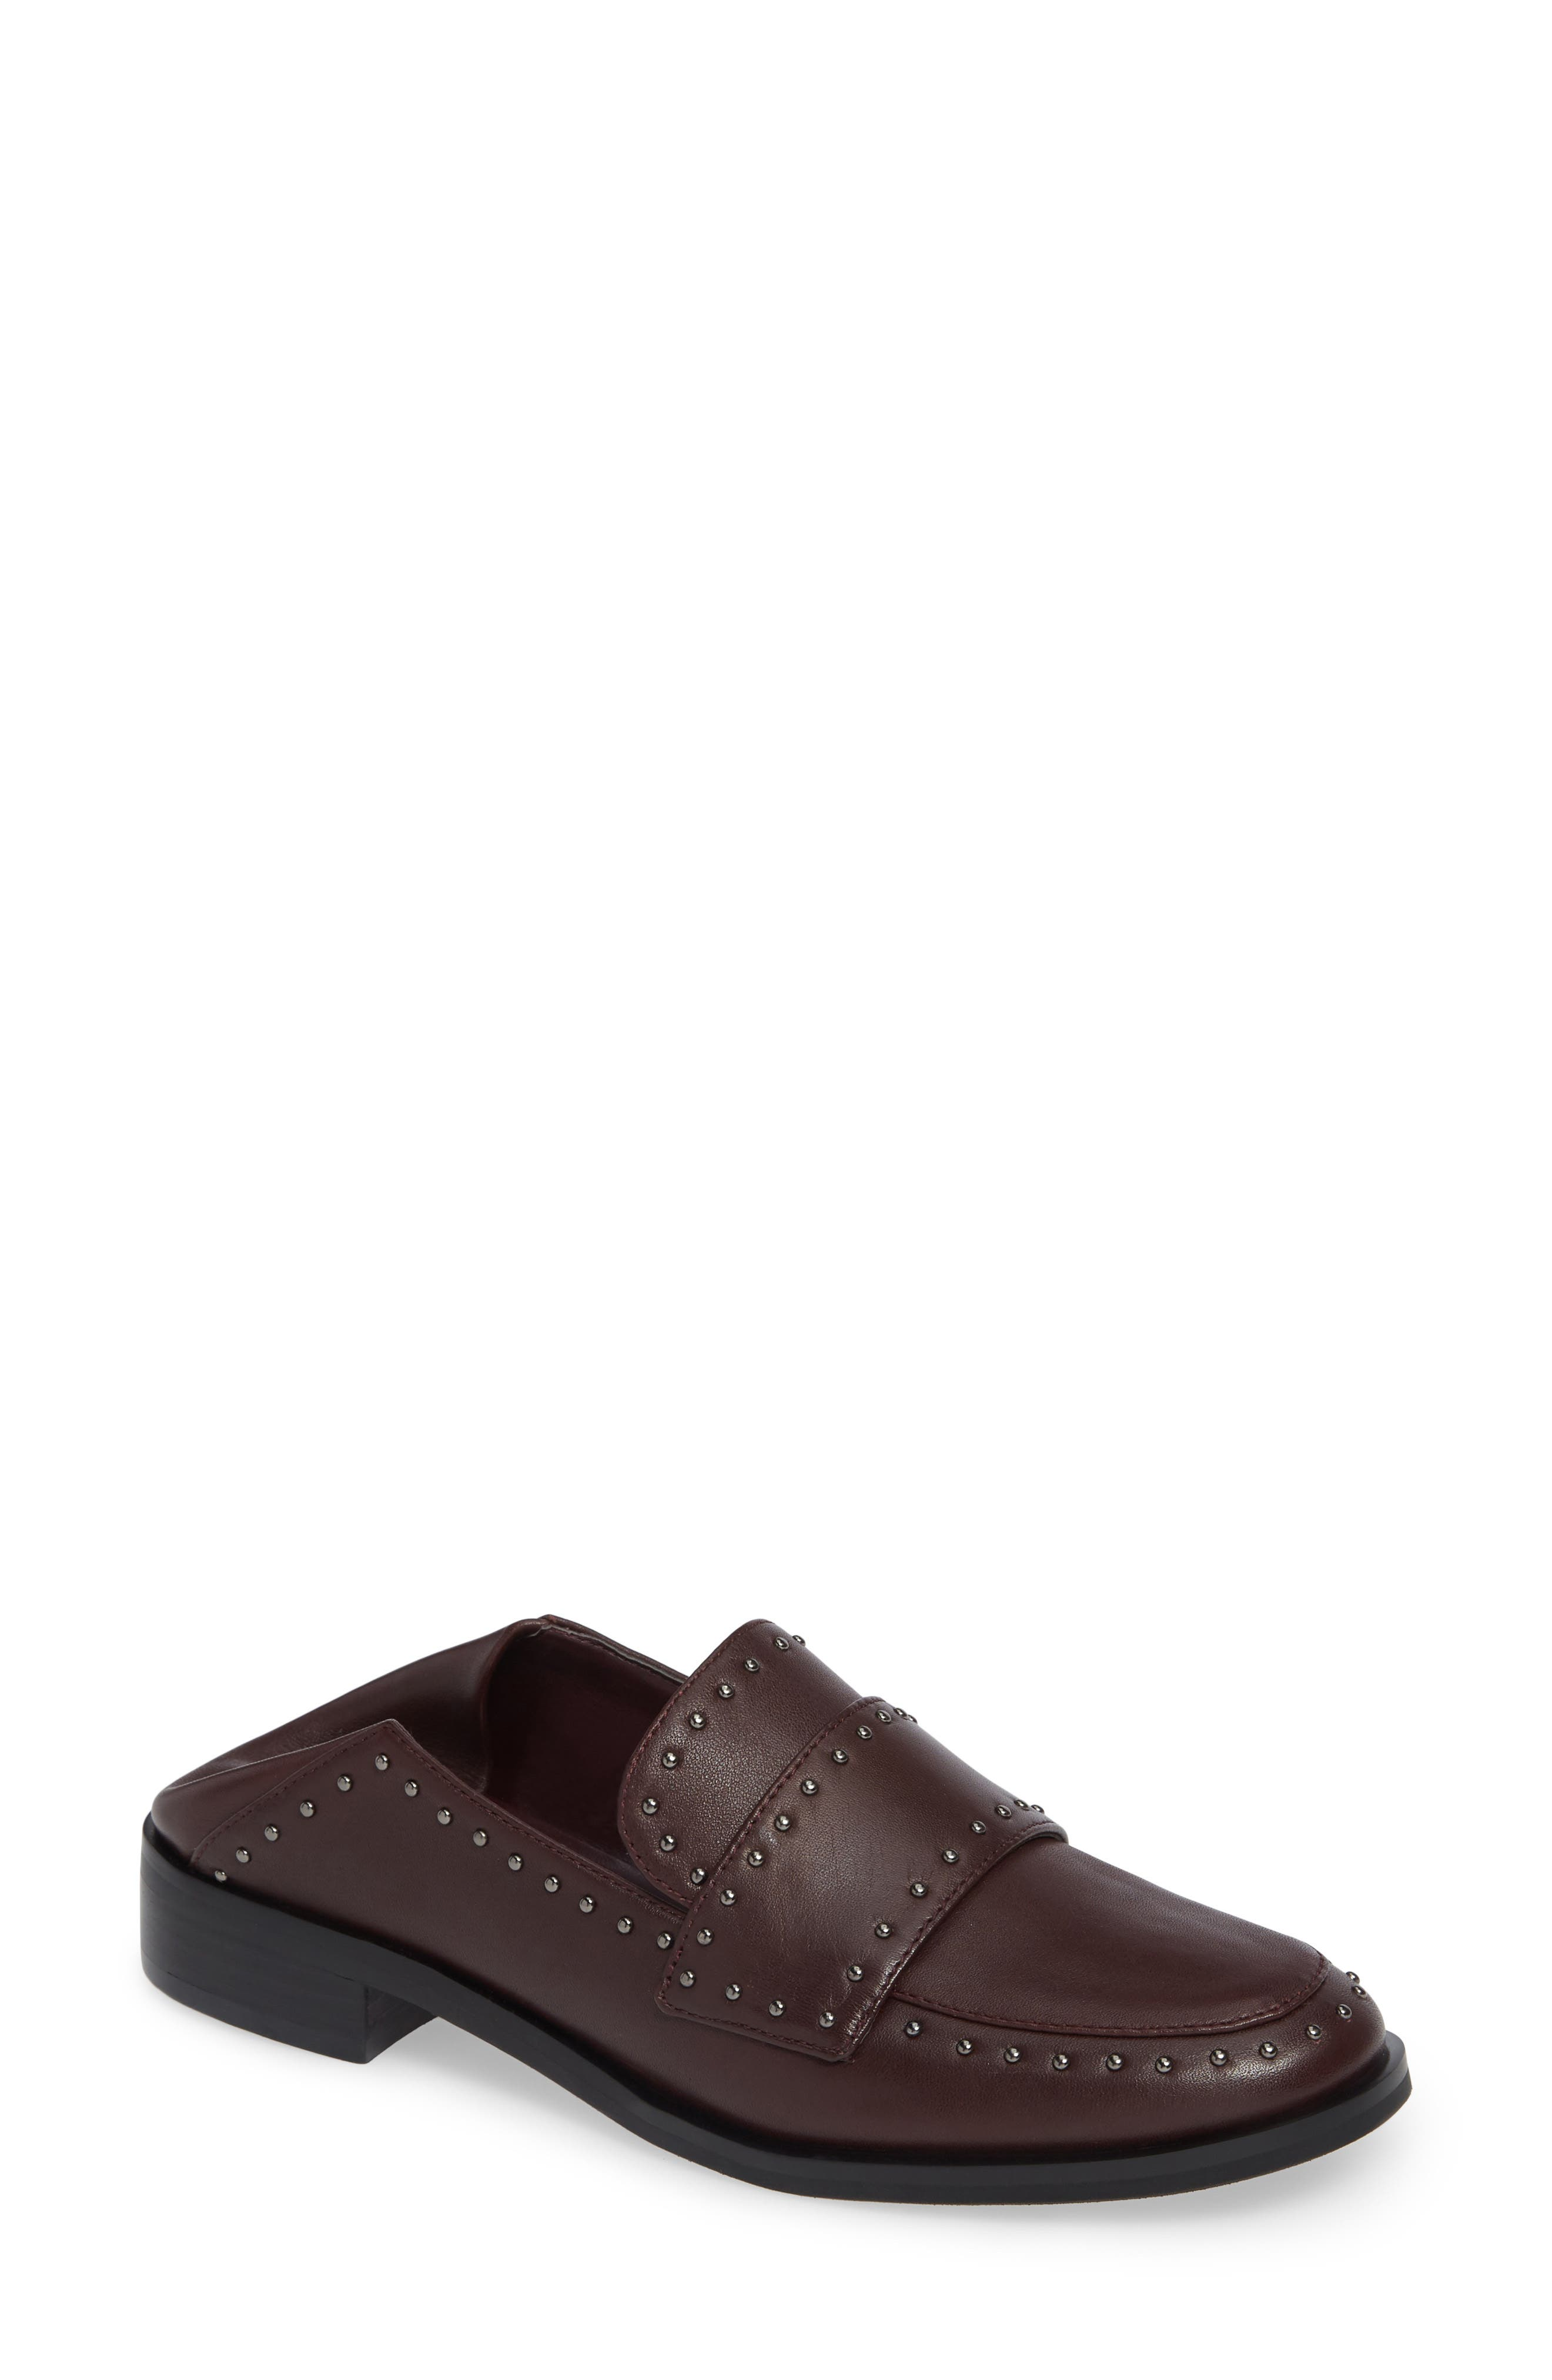 Nox Collapsible Loafer,                         Main,                         color, 930